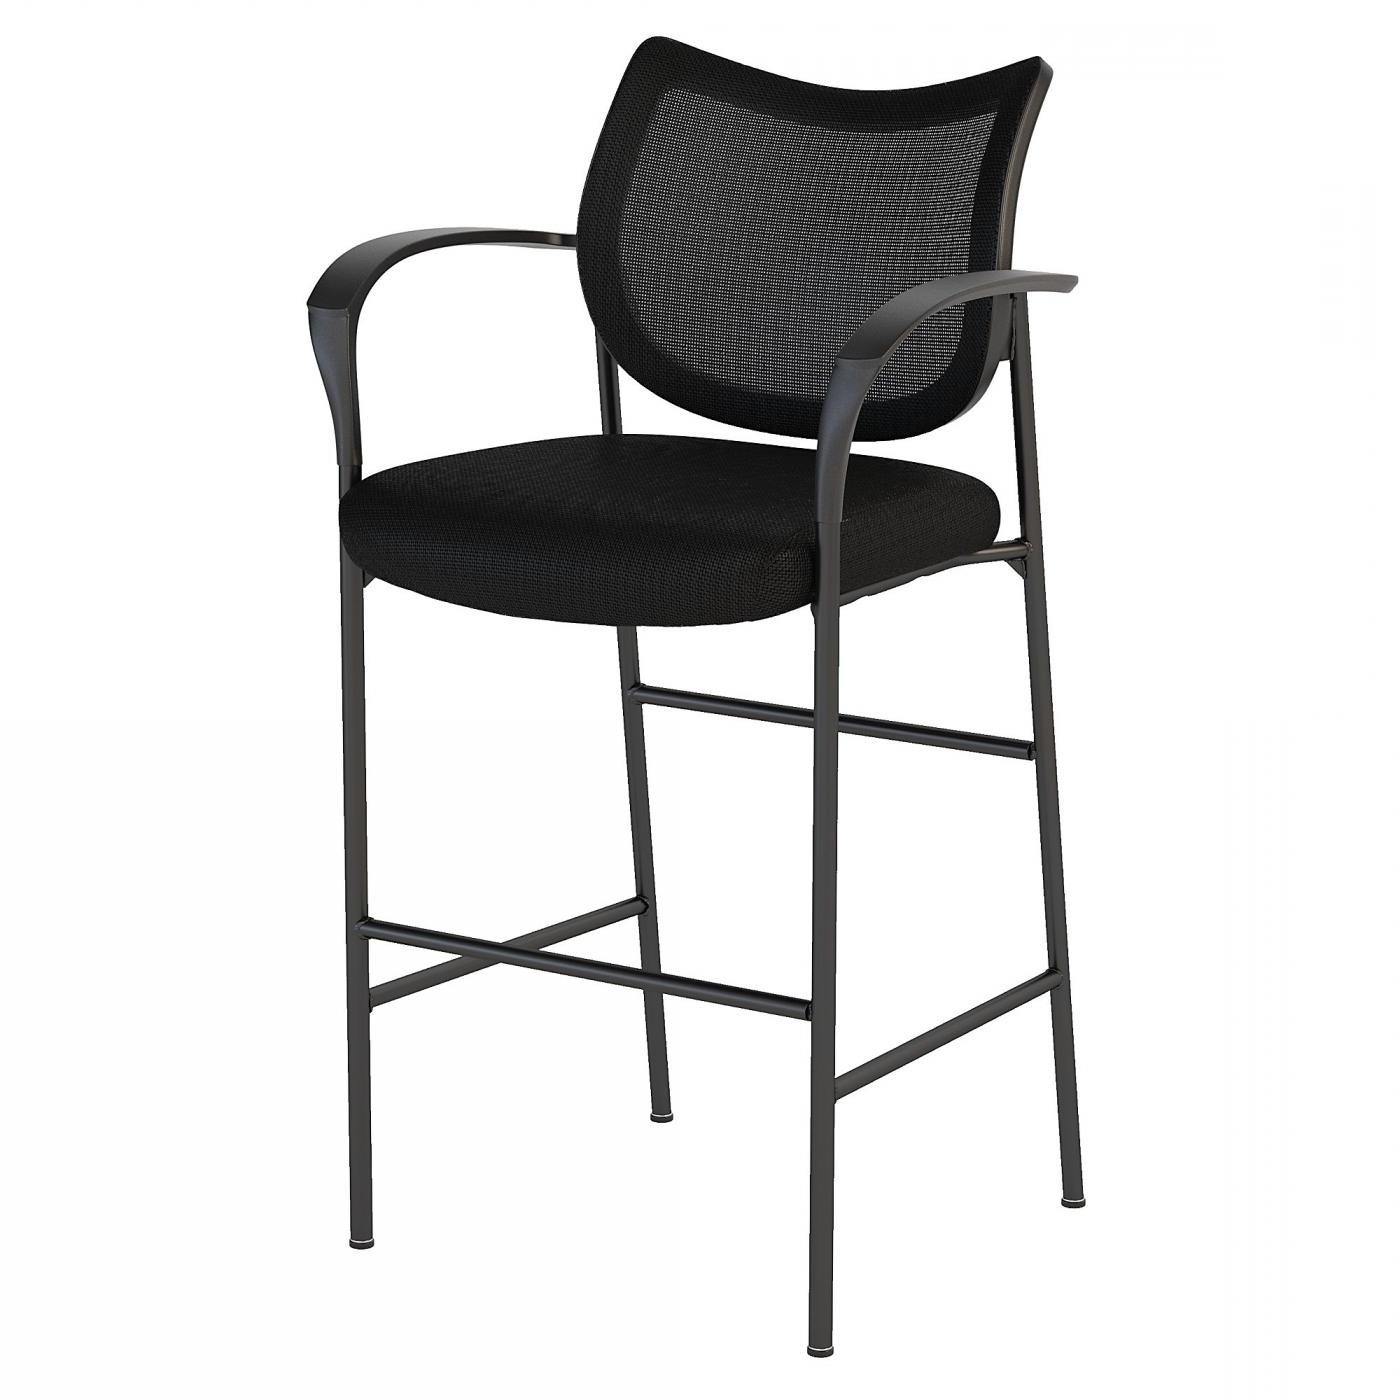 <font color=#c60><b>BUSH BUSINESS FURNITURE CORPORATE MESH BACK STANDING DESK STOOL. FREE SHIPPING</font></b> </font></b></font></b>